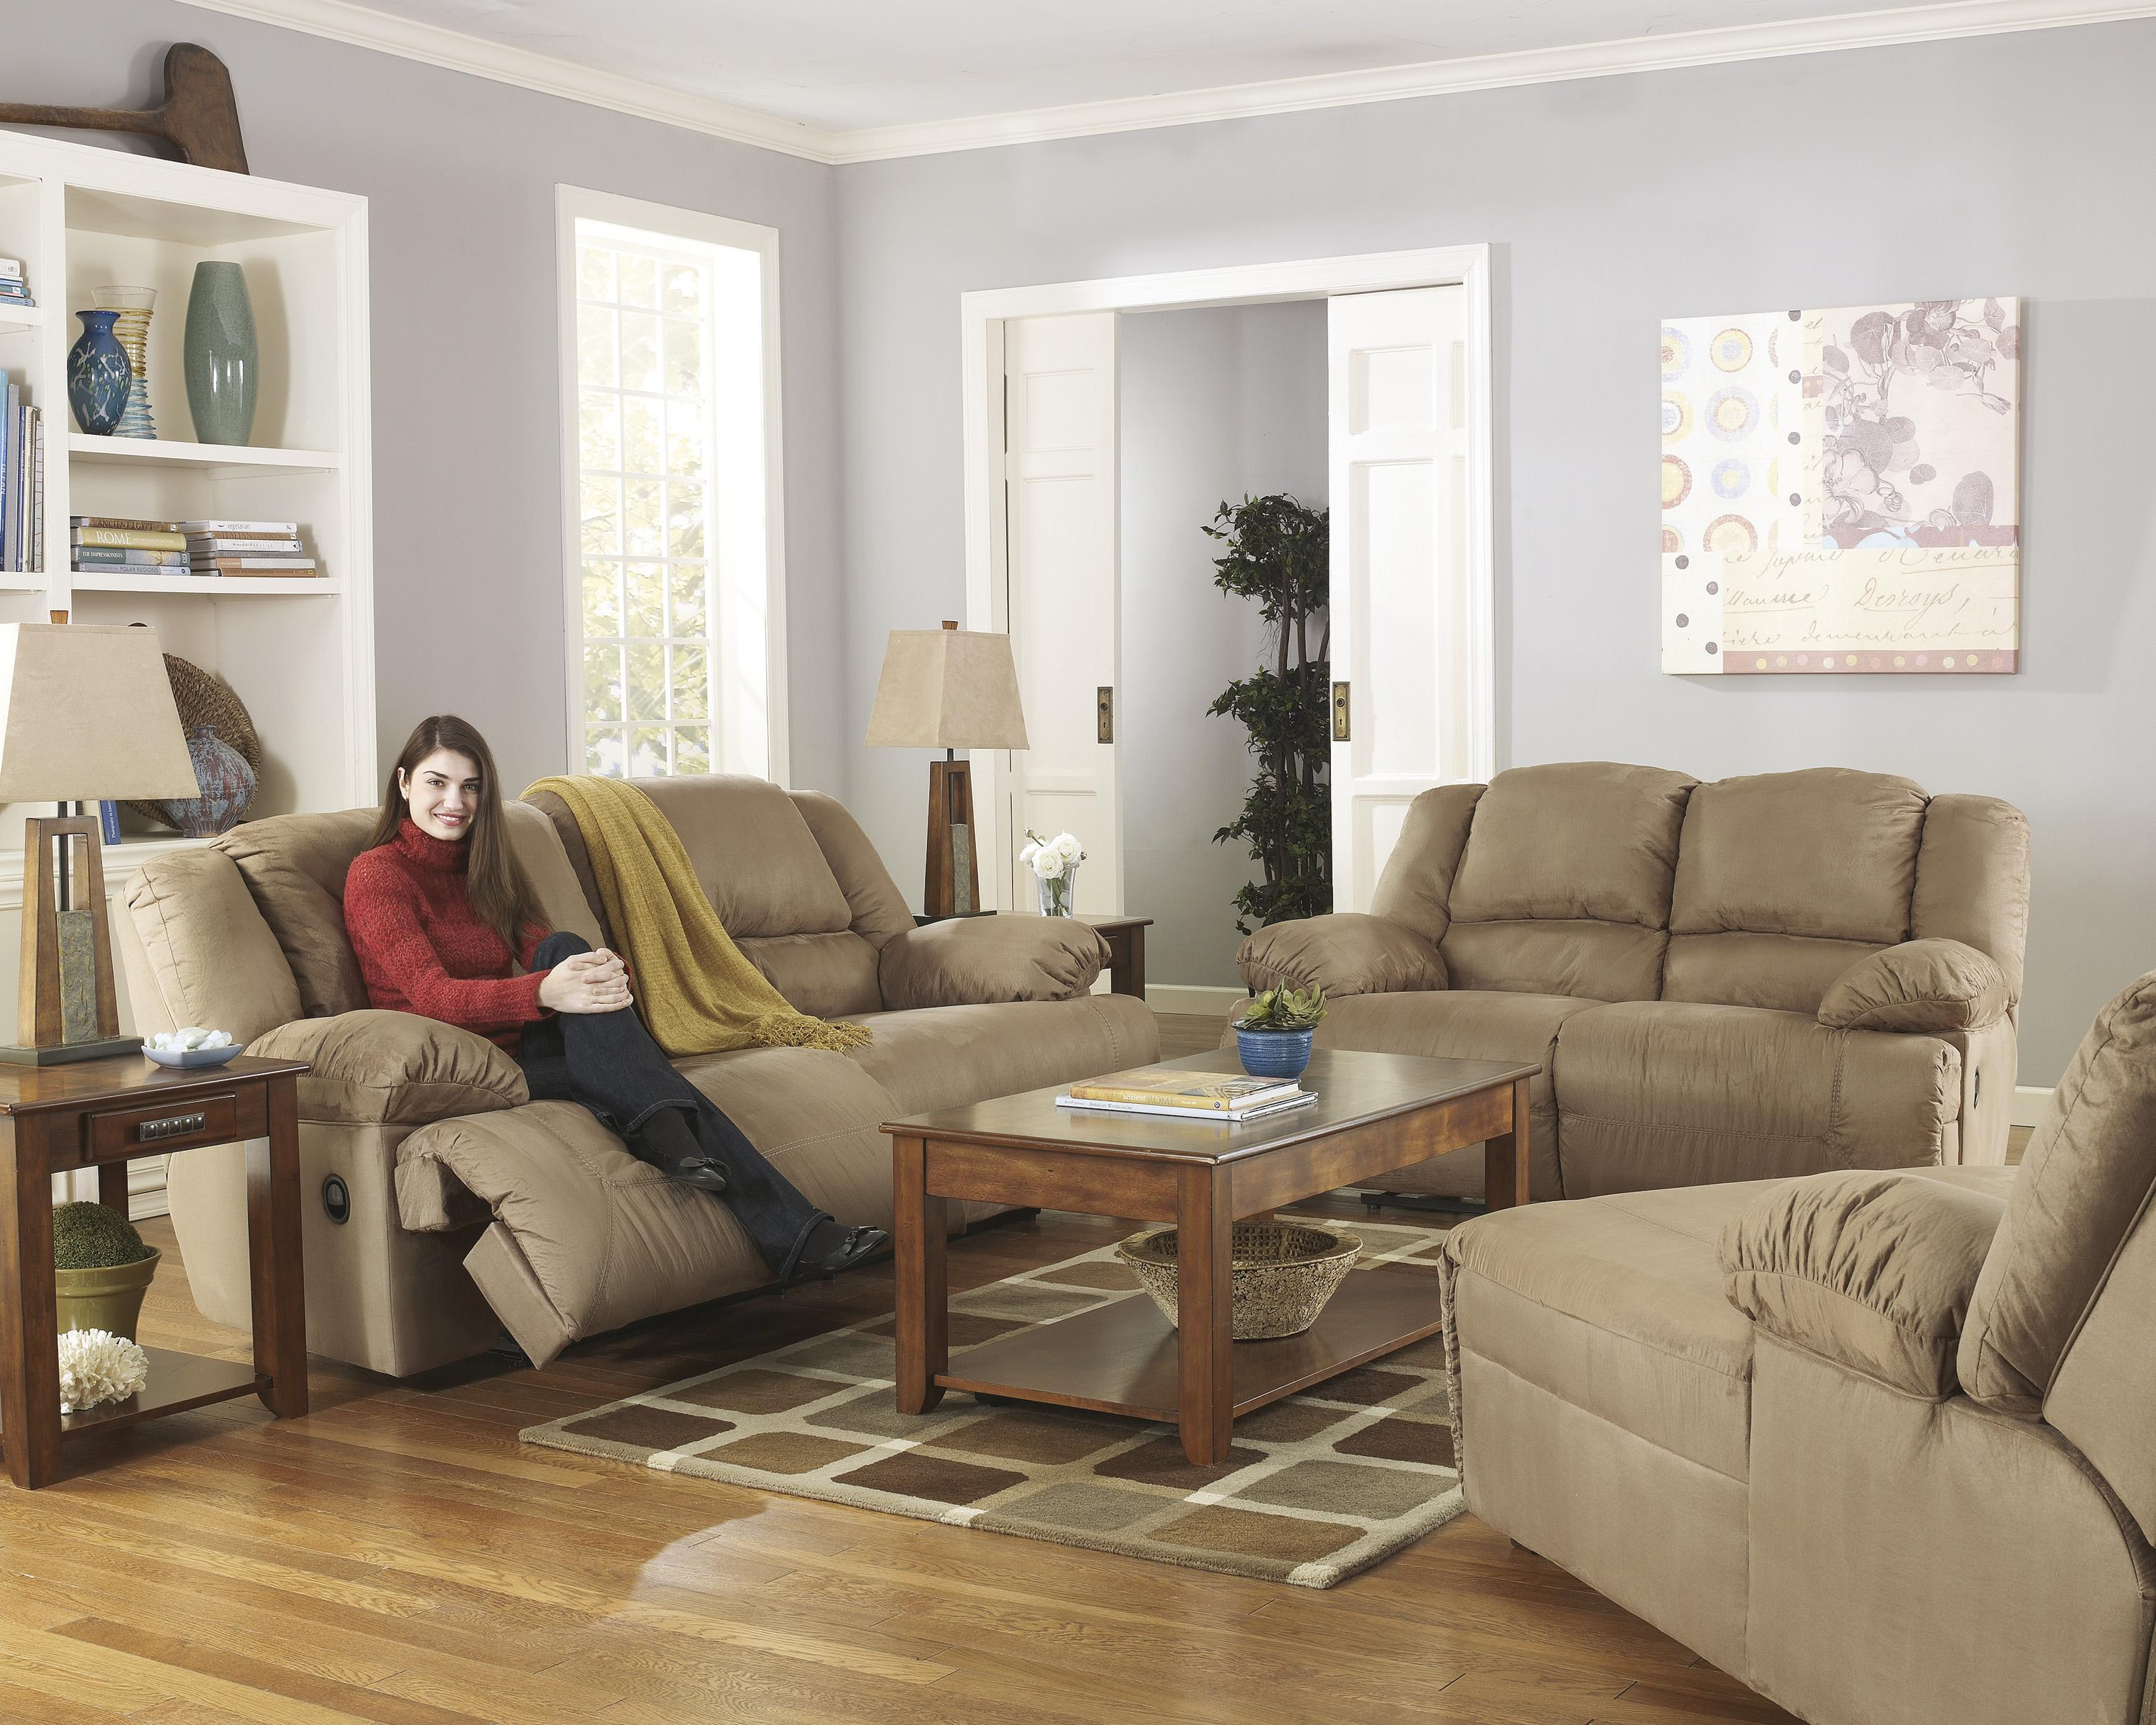 Hogan - Mocha Reclining Living Room Group by Signature Design by Ashley at Northeast Factory Direct